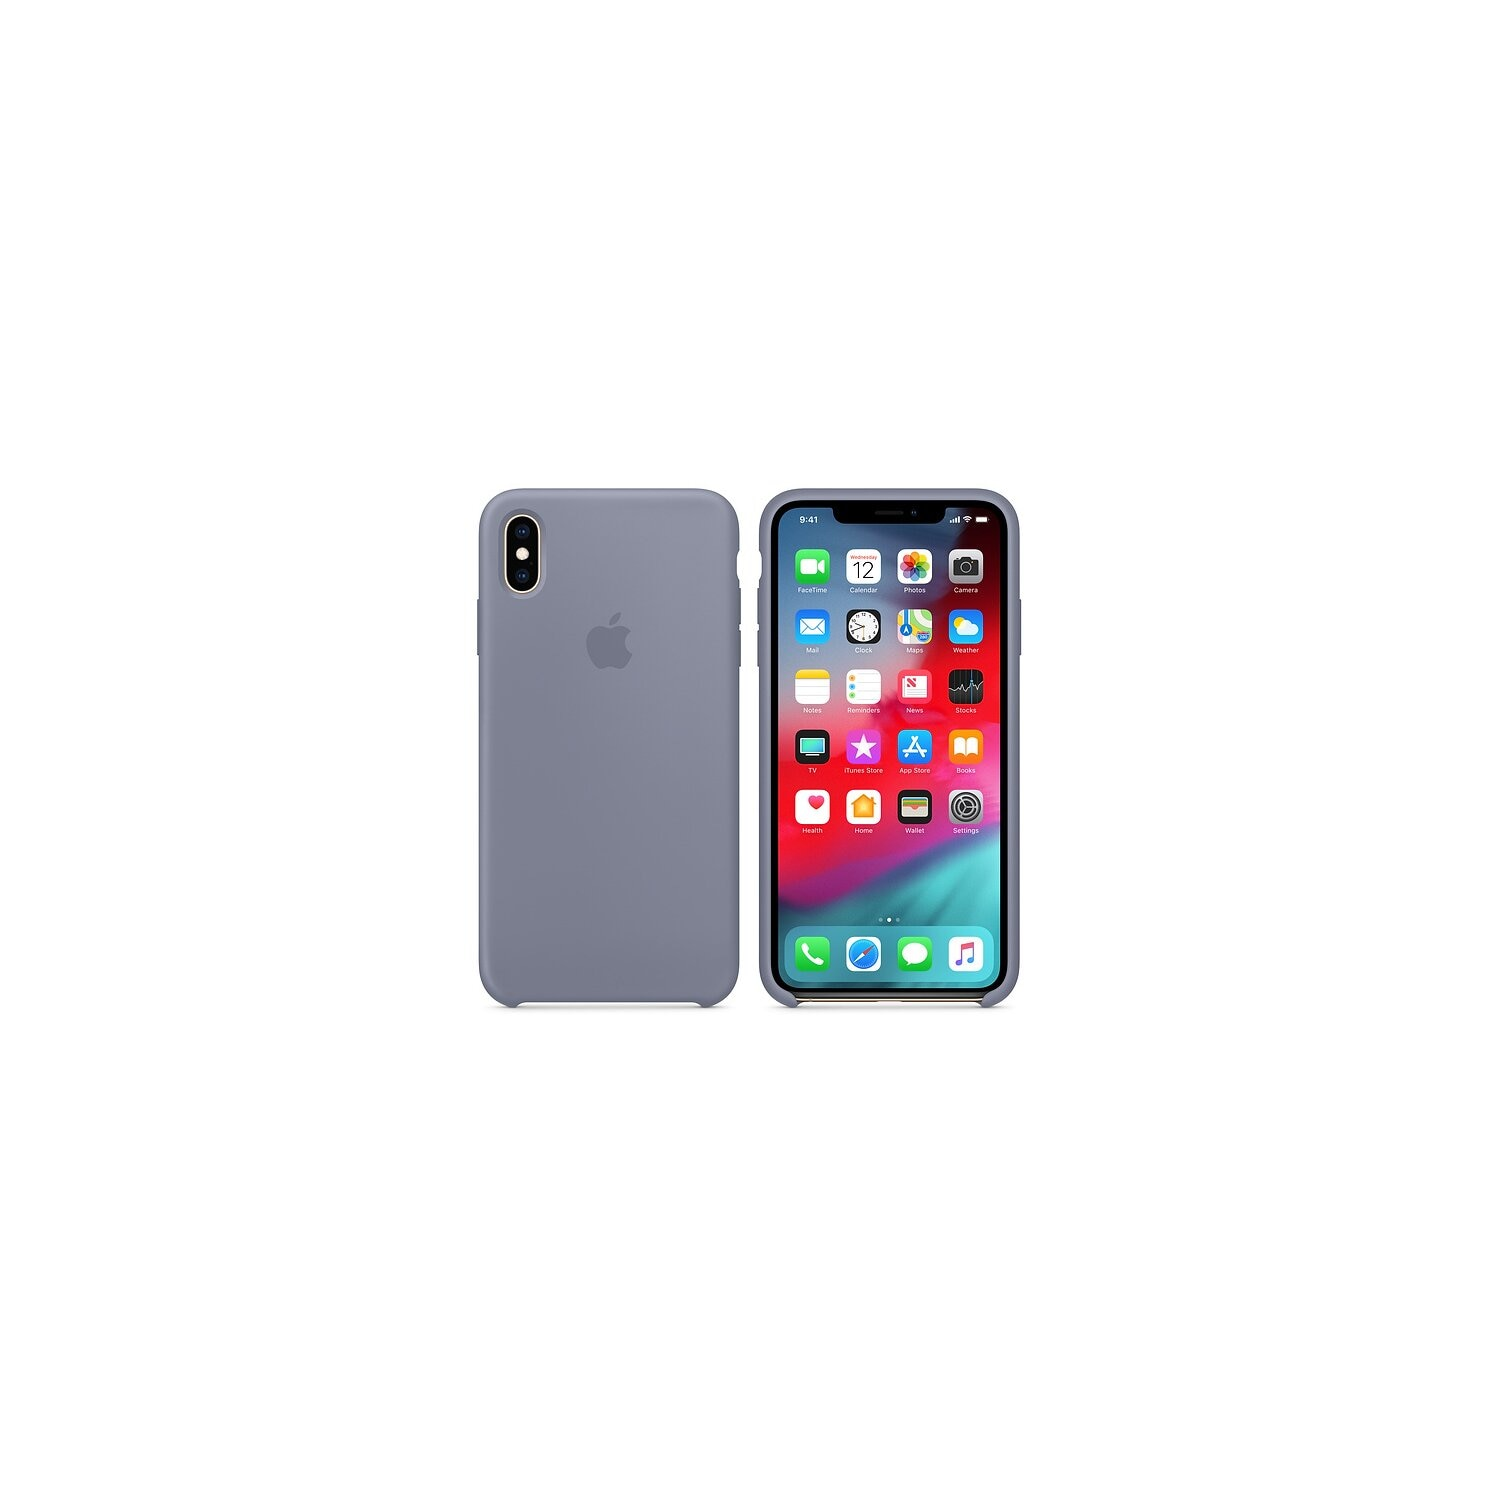 Silikonowe etui APPLE do iPhone XS Max Lawendowo-szary MTFH2ZM/A